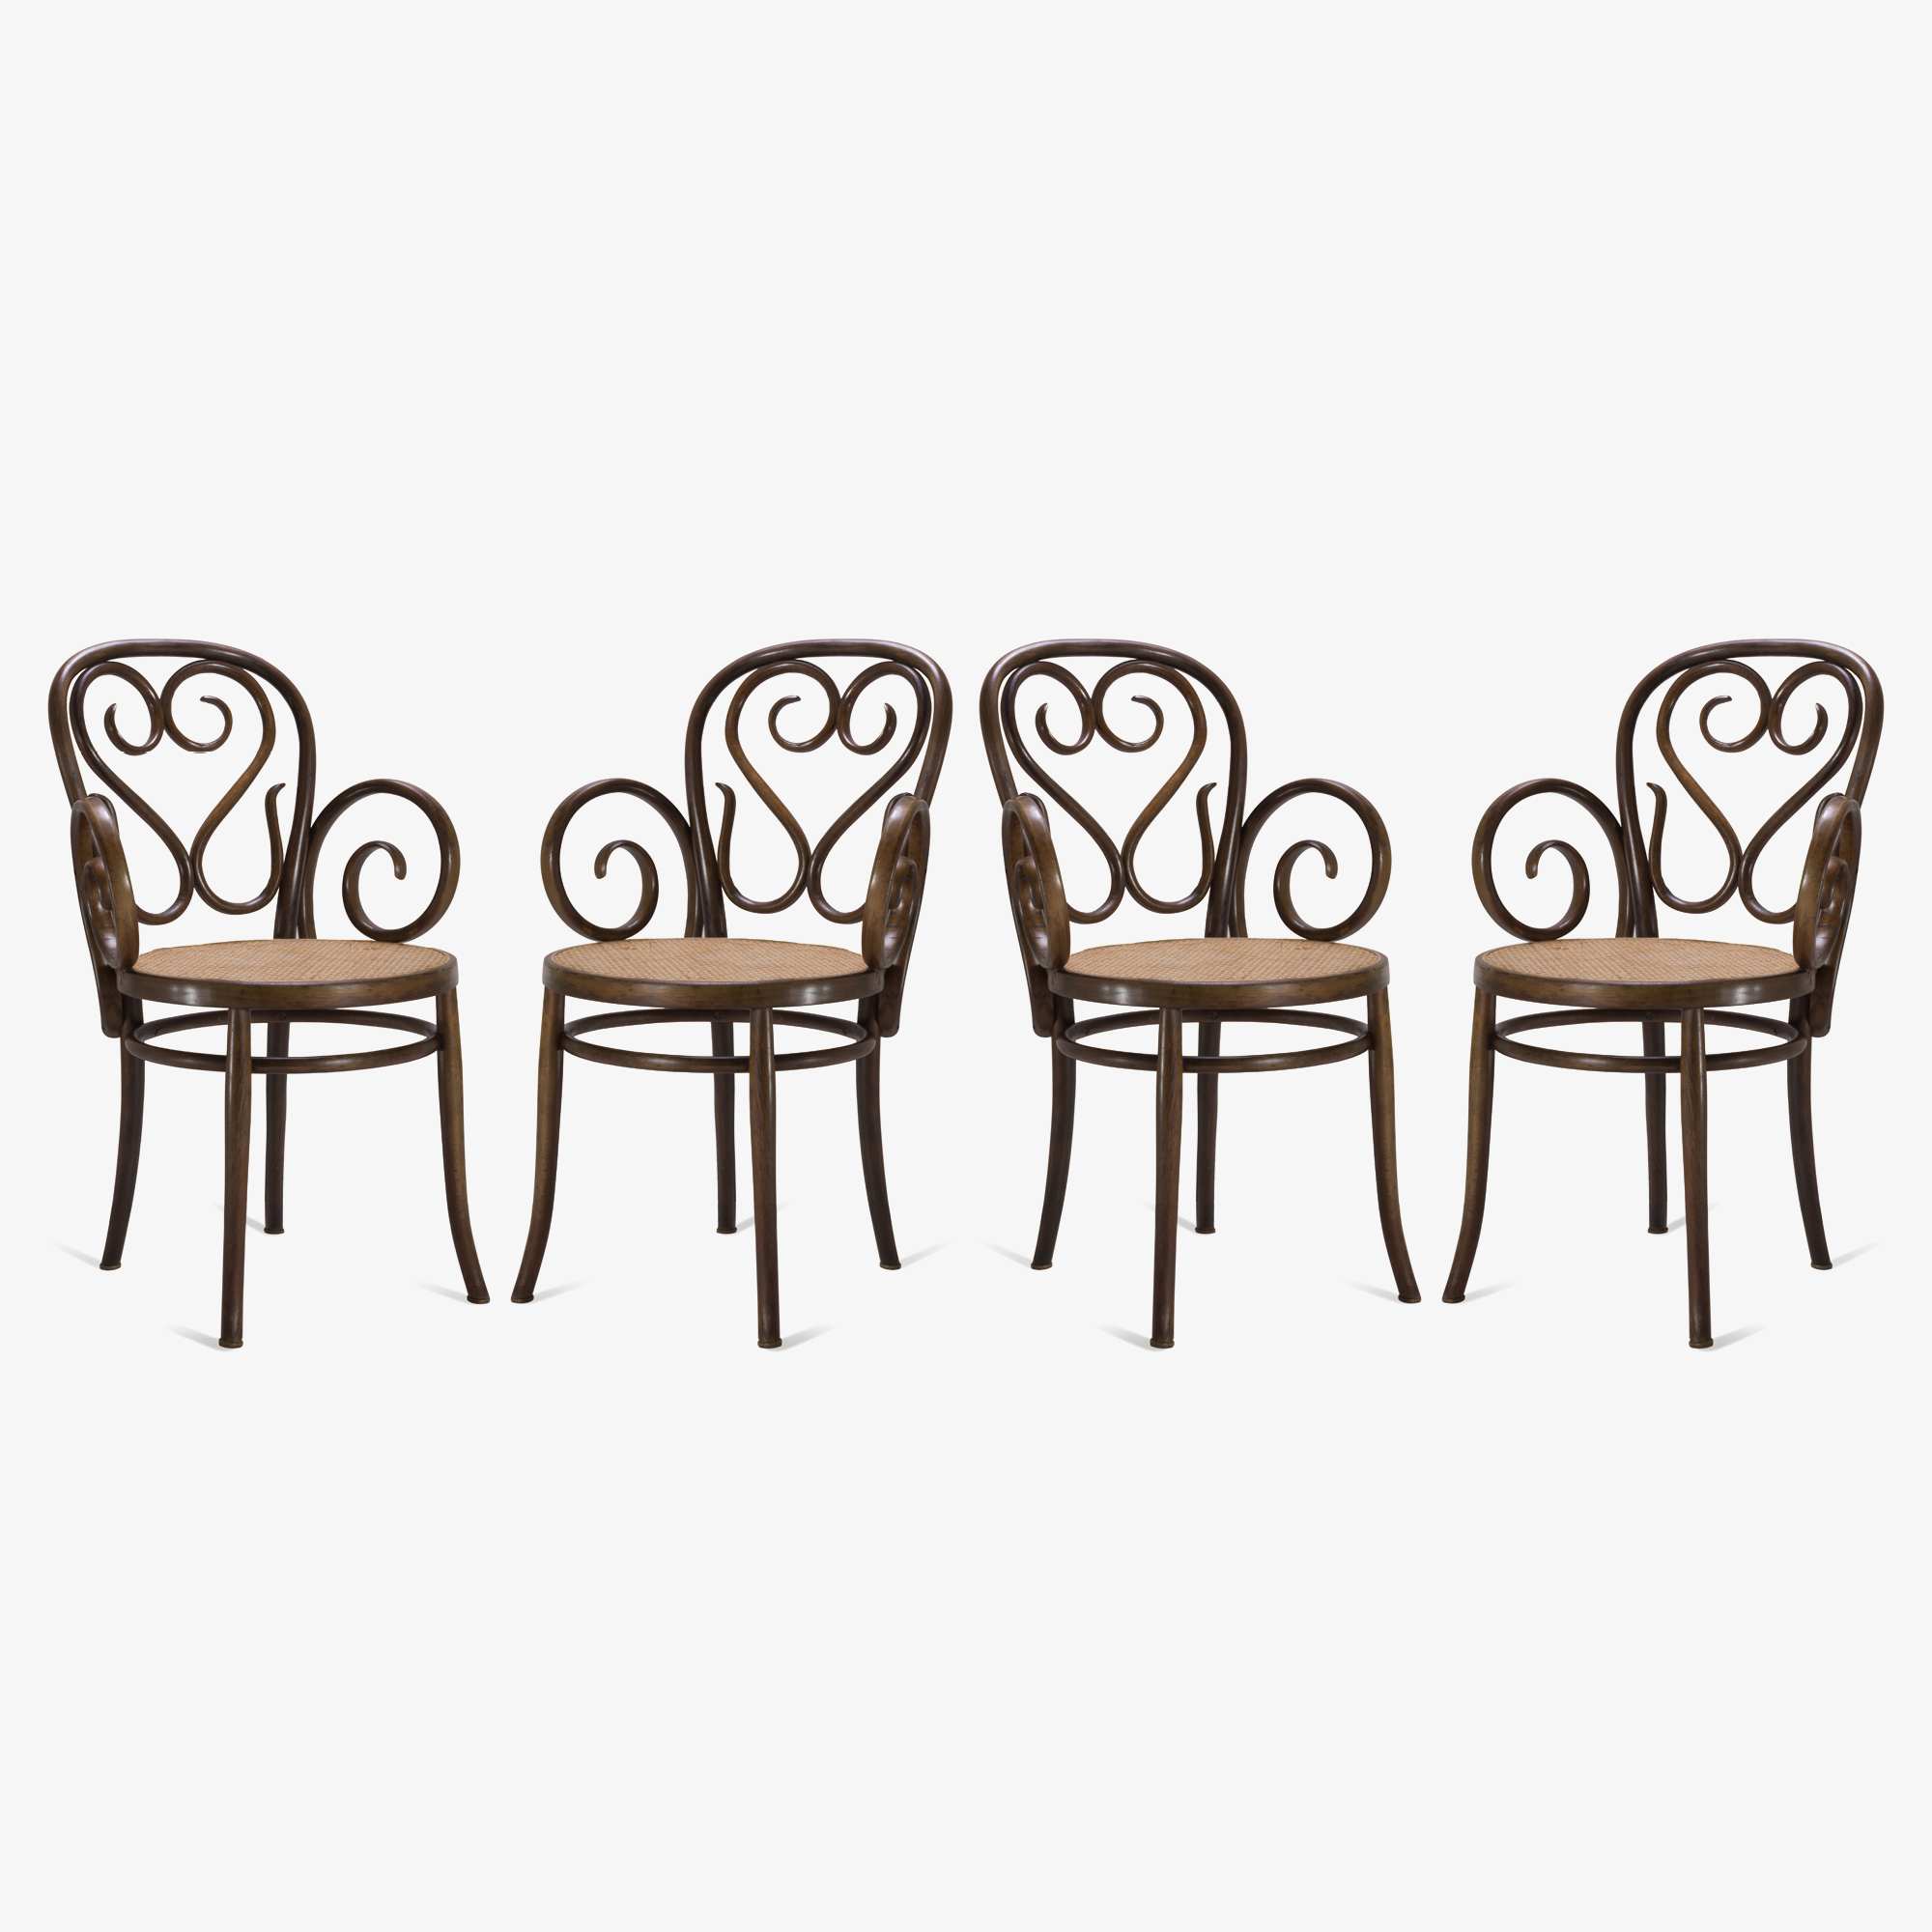 Italian Wood Bistro Chairs with Caned Seats.png